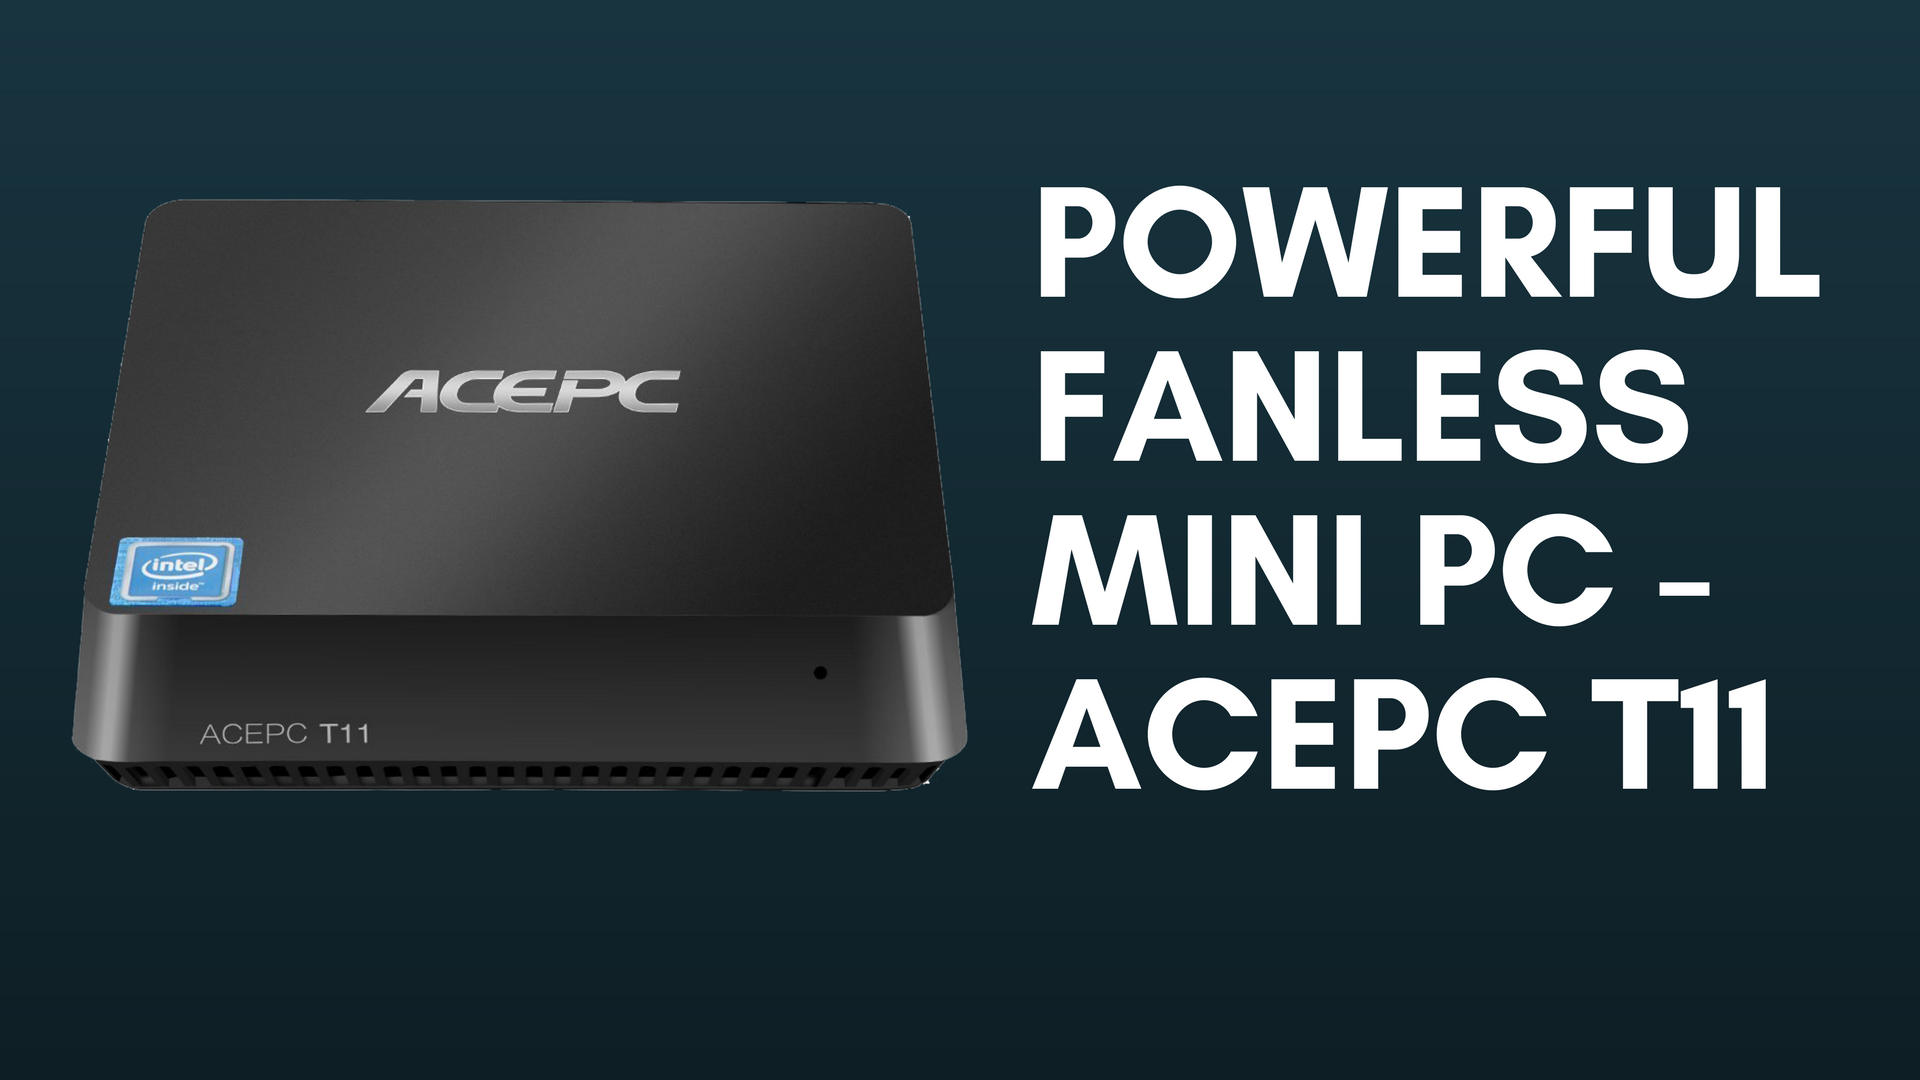 Powerful Fanless Mini PC - ACEPC T11 -